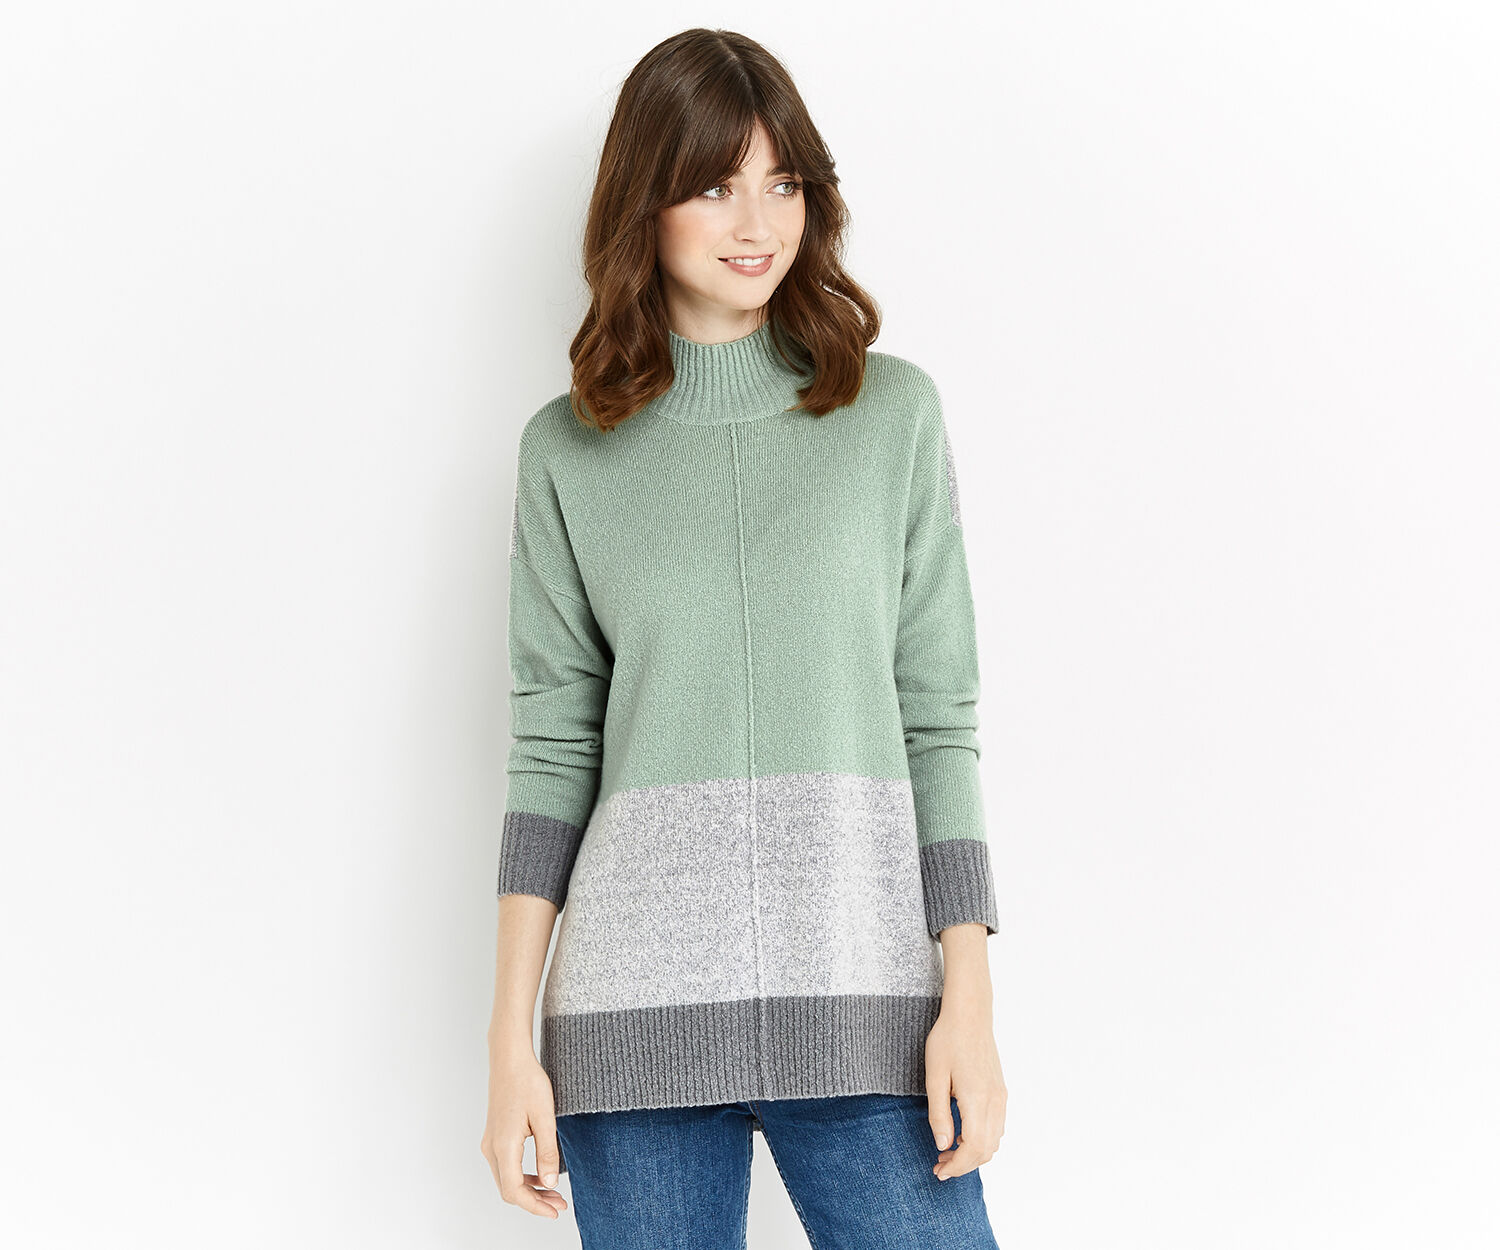 Oasis, Funnel neck colour block knit Teal Green 1